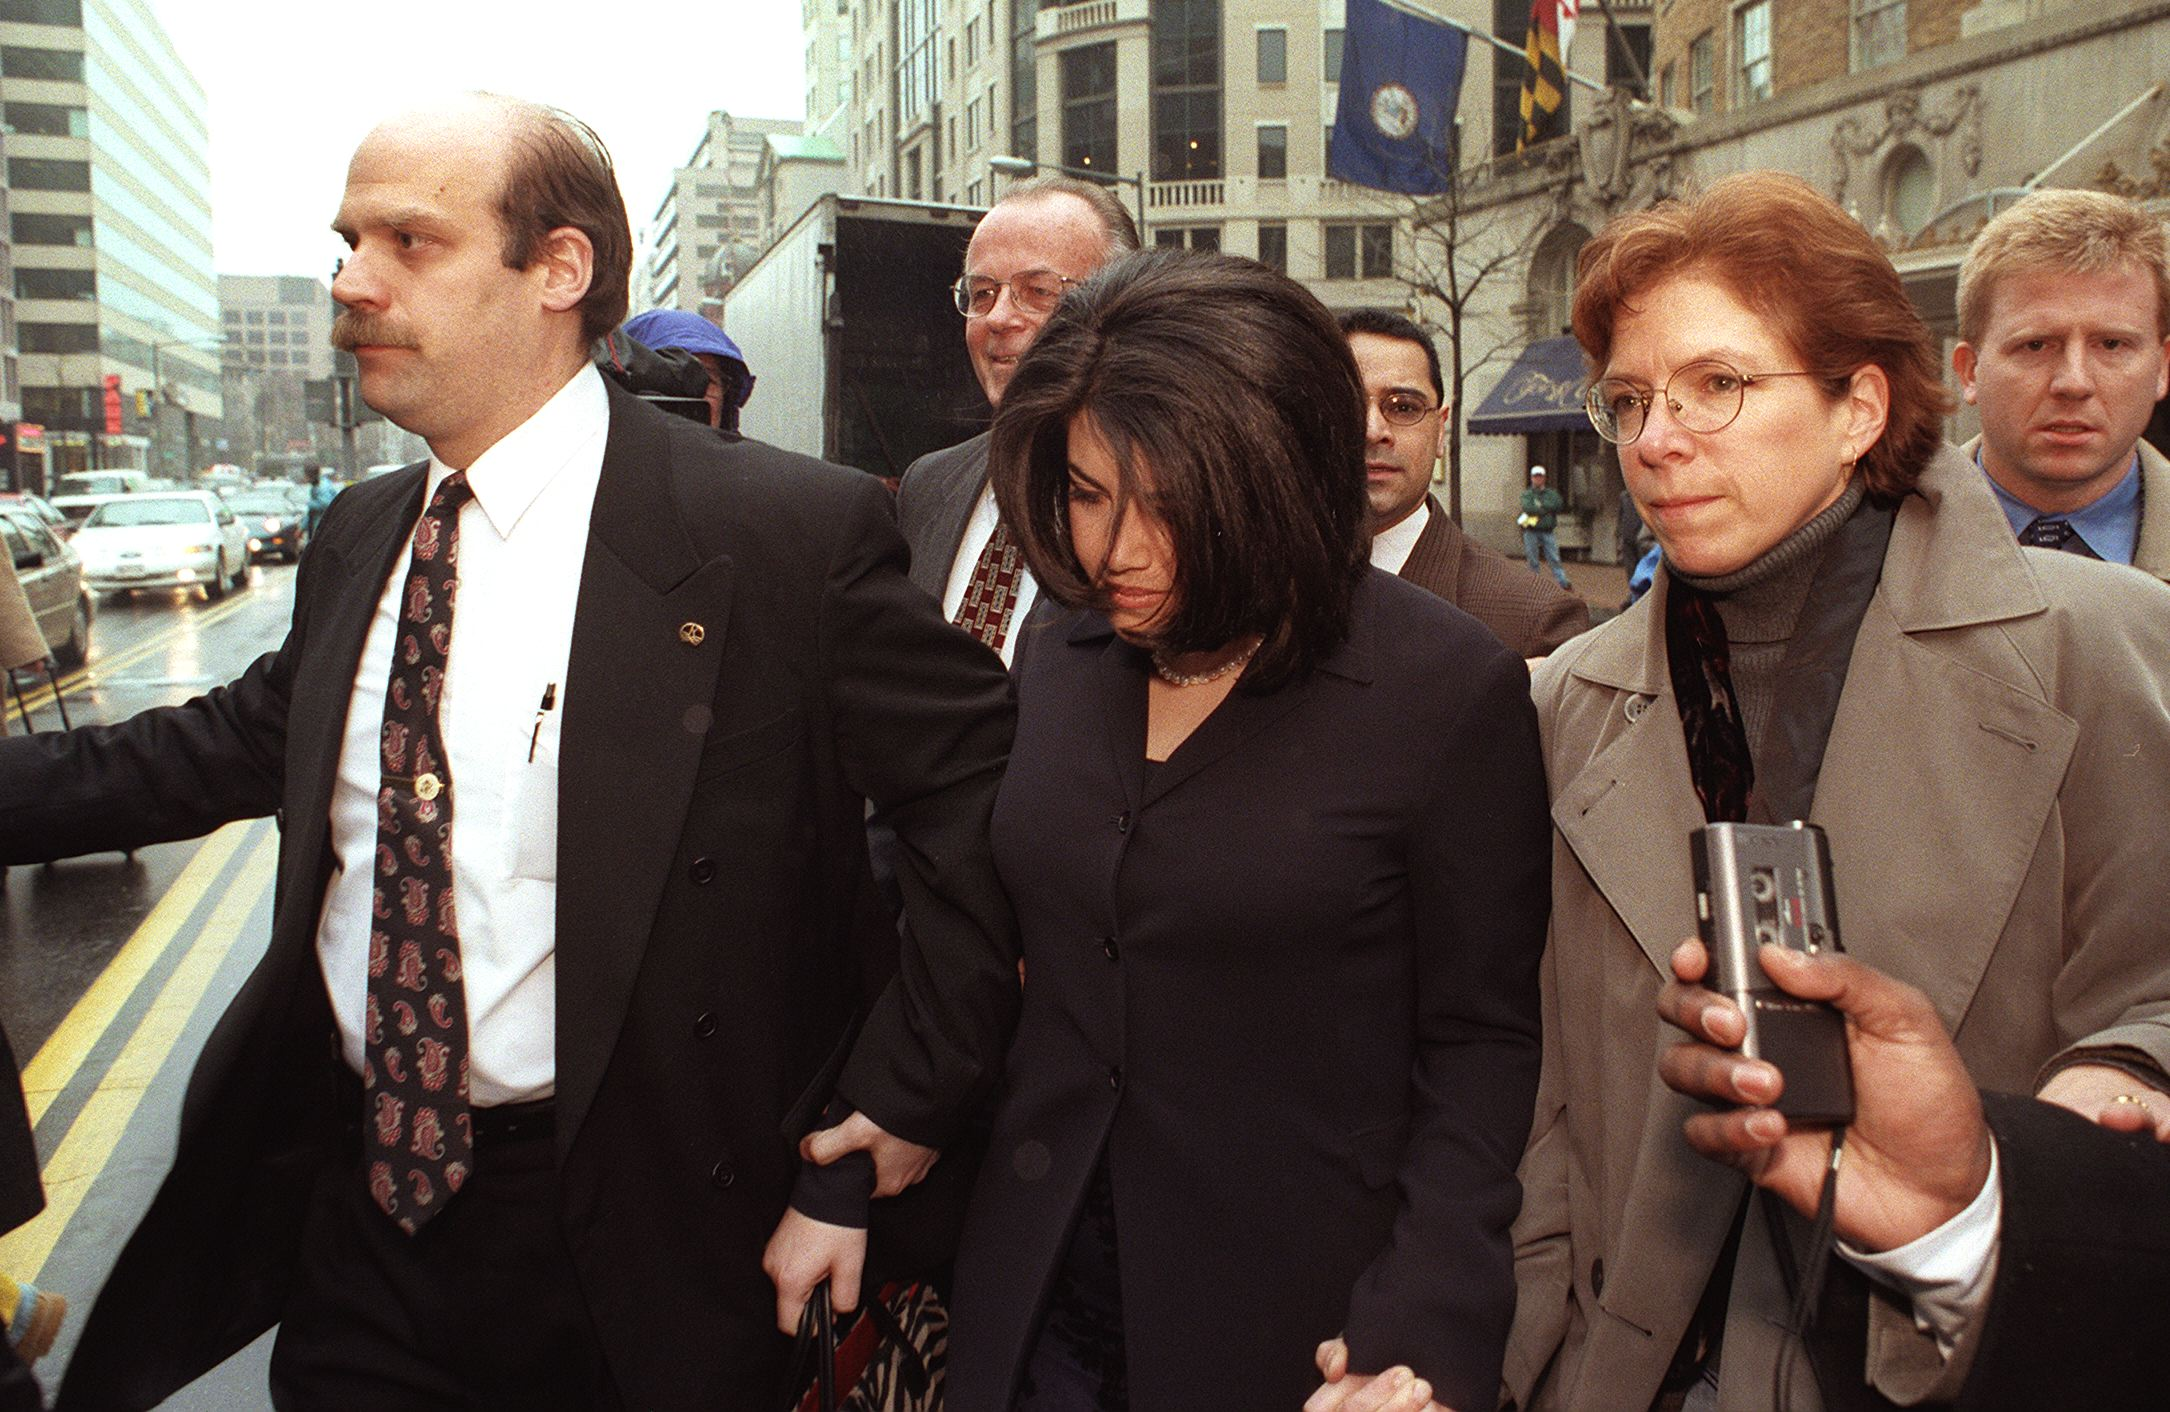 WASHINGTON, : Former White House intern Monica Lewinsky(C) is escorted across Connecticut Avenue 02 February in Washington, DC, enroute to her attorneys office. Lewinsky gave a deposition 01 February as a witness in the impeachment trial of US President Bill Clinton currently in progress in the senate. AFP PHOTO/Chris KLEPONIS (Photo credit should read CHRIS KLEPONIS/AFP/Getty Images)